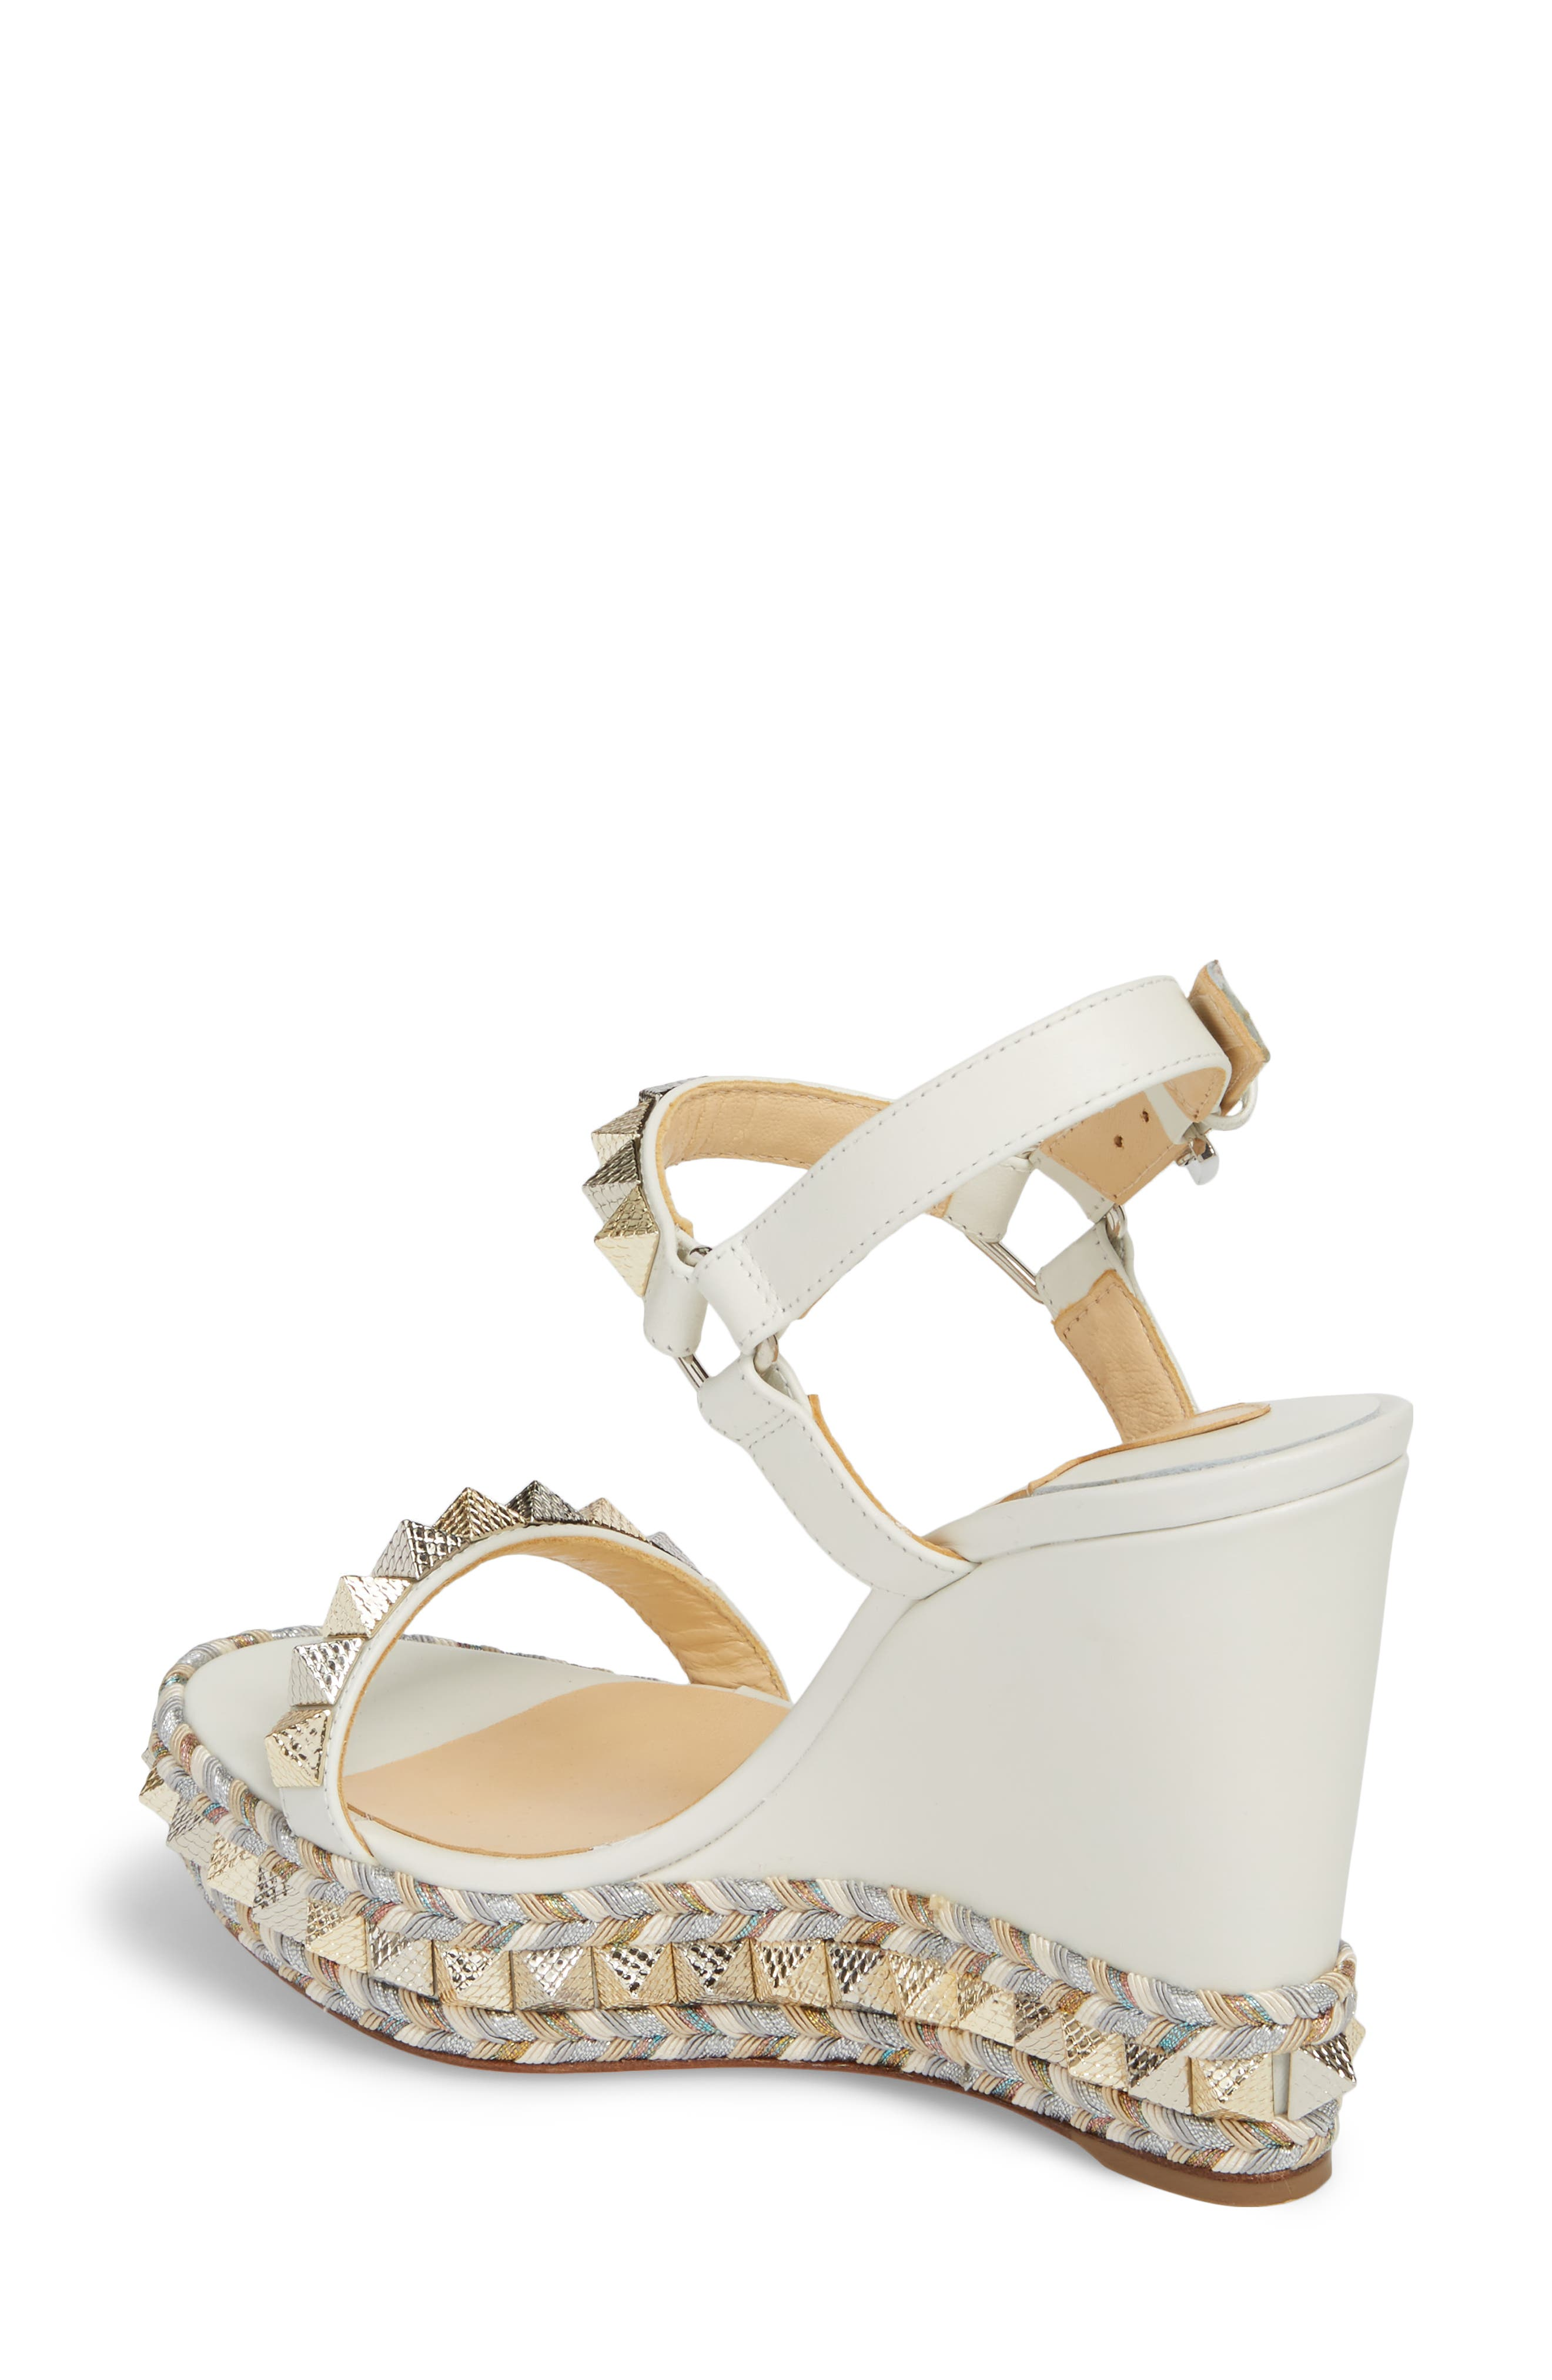 Pyraclou Wedge Sandal,                             Alternate thumbnail 2, color,                             LATTE WHITE